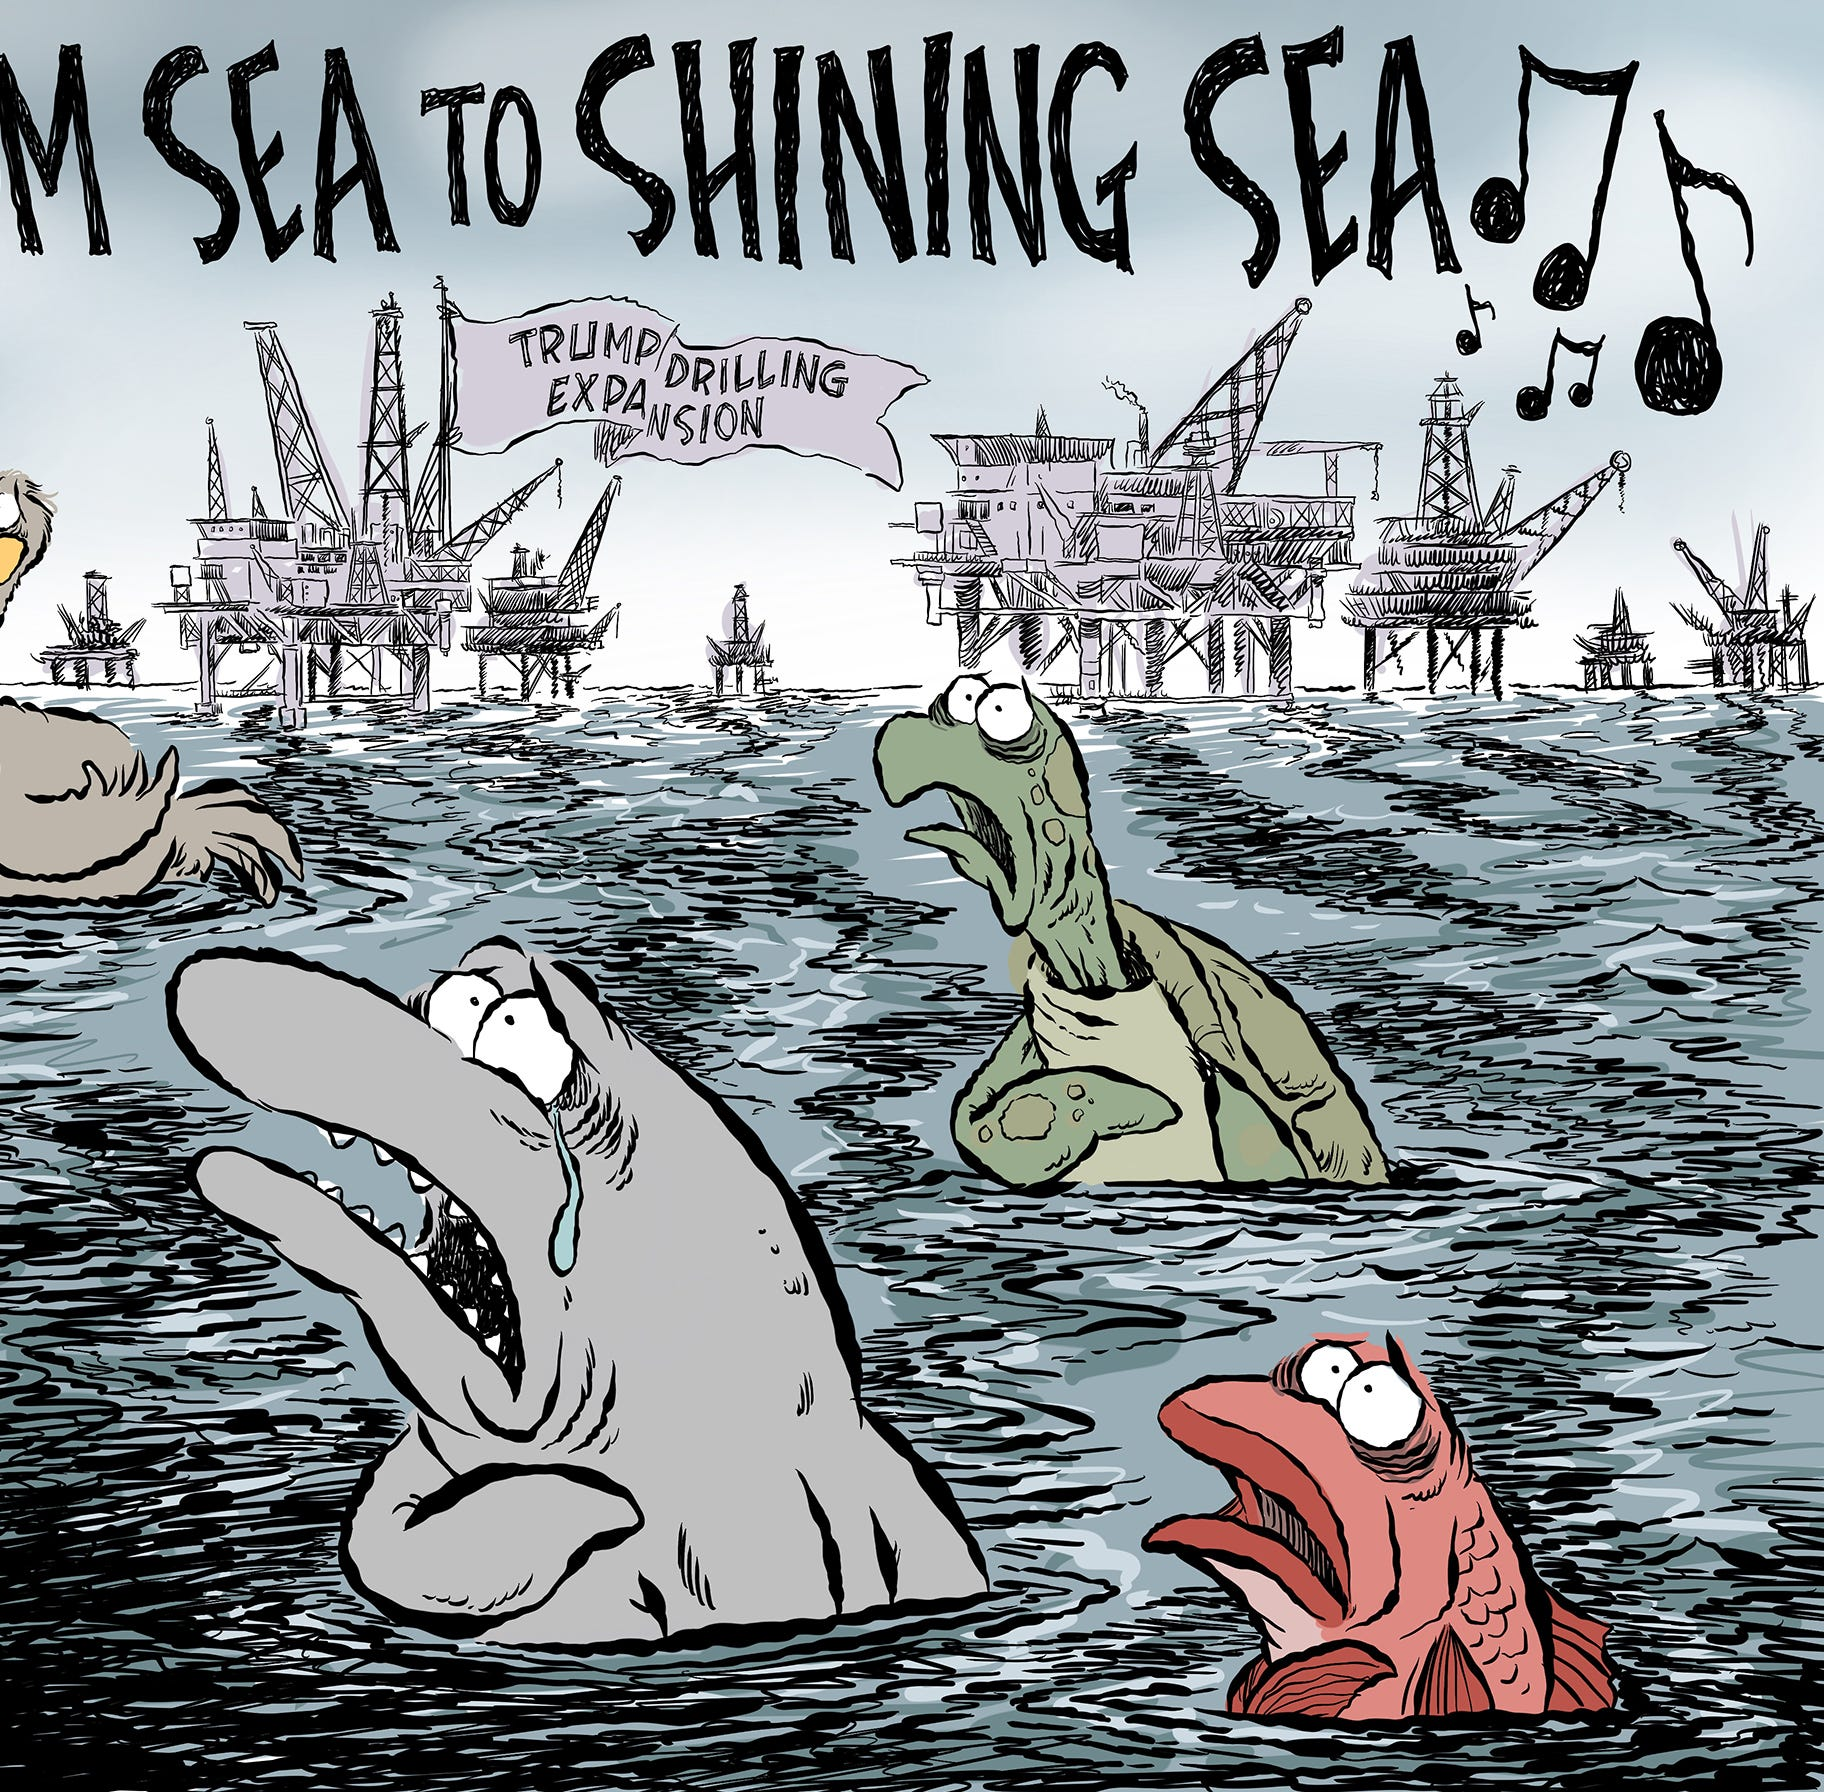 New safety regulations for offshore drilling are bad news | Another view